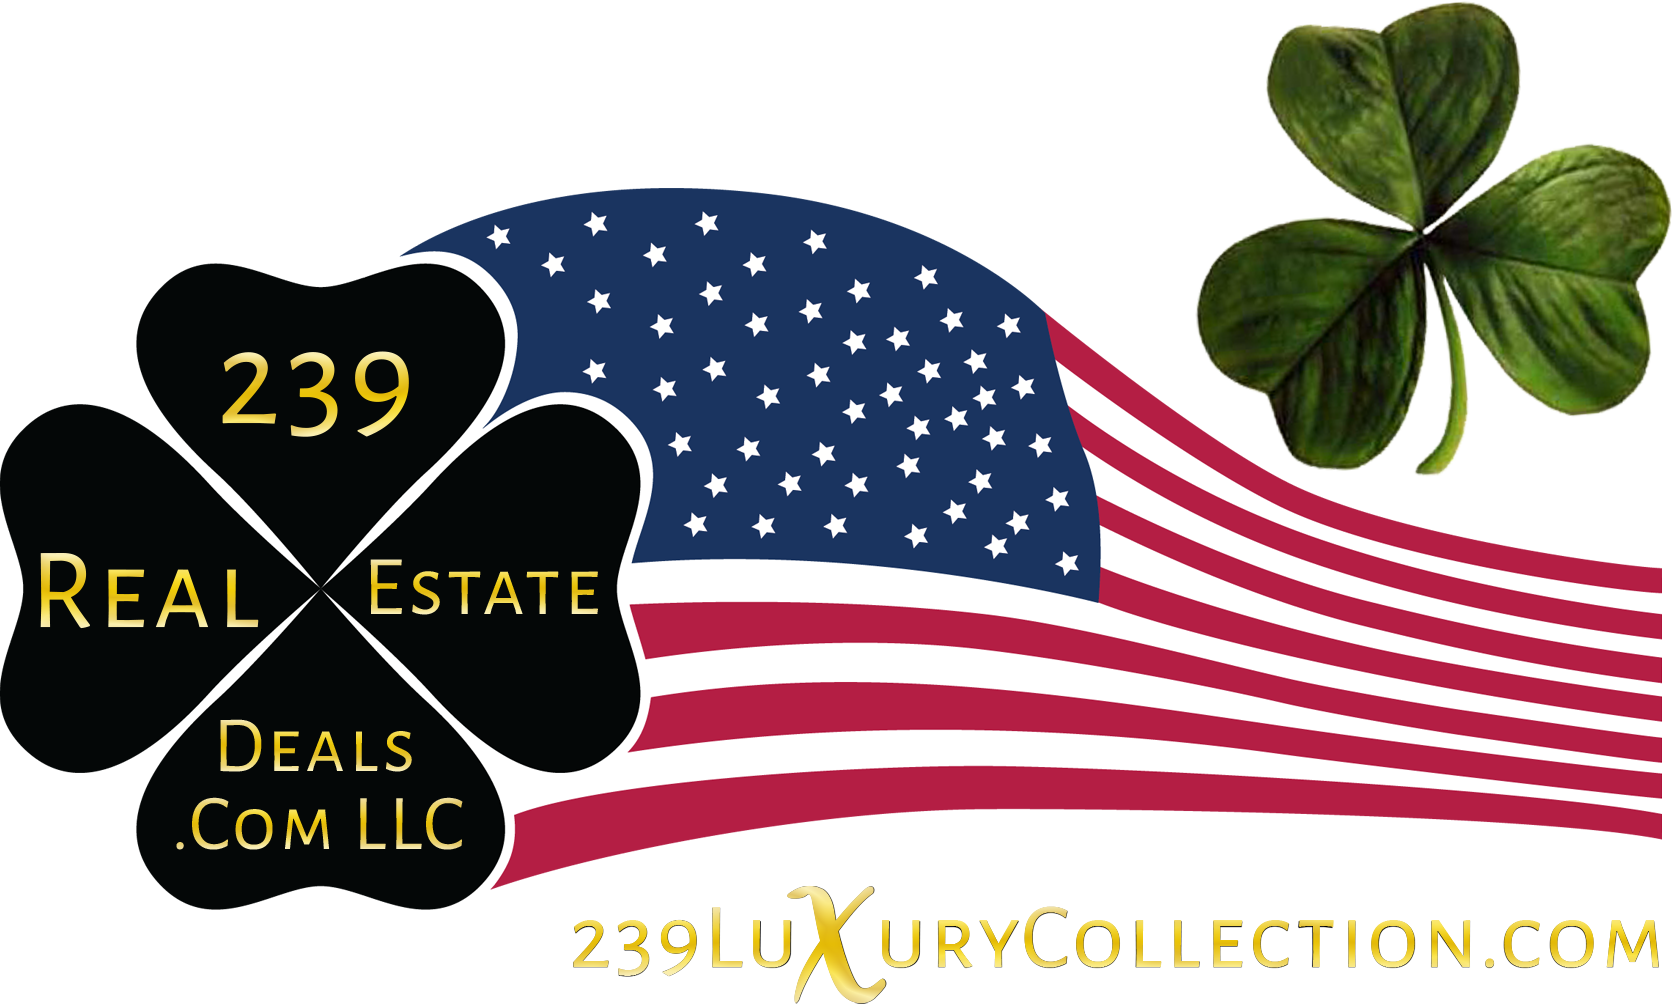 Logo for 239RealEstateDeals.Com LLC a Florida Licensed Real Estate Company with impressive track record amongst its agents and Broker